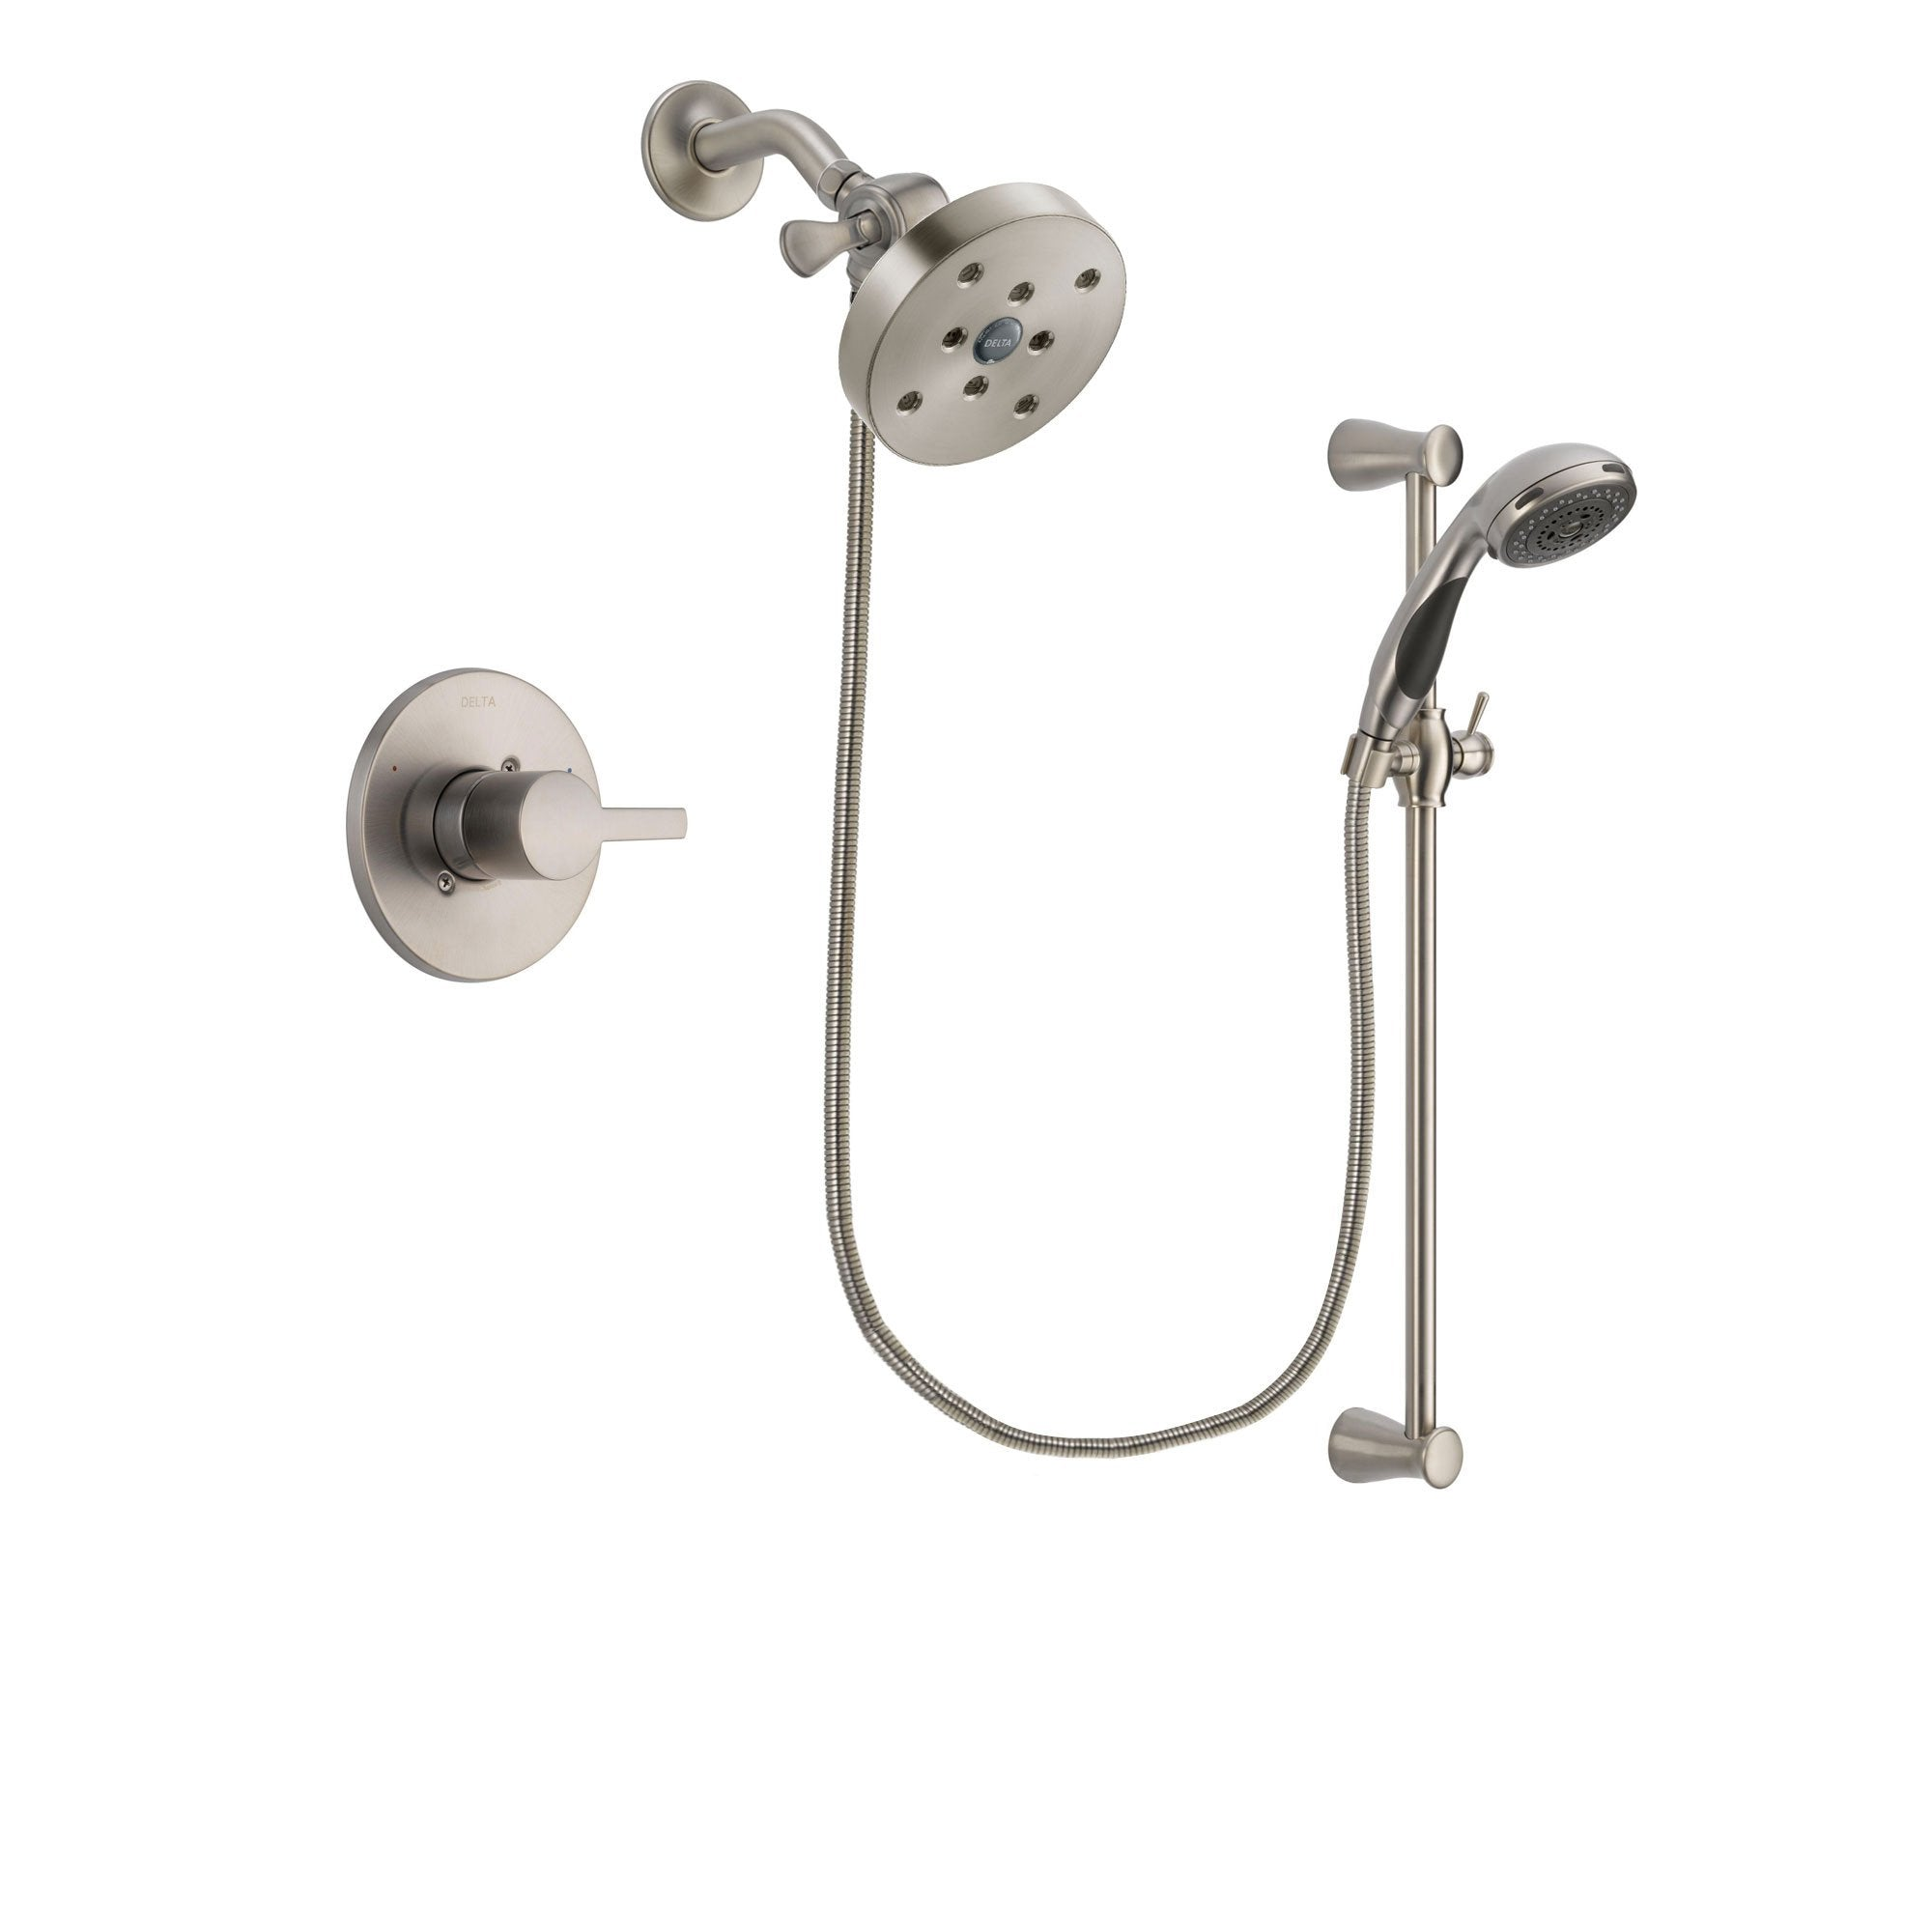 Delta Compel Stainless Steel Finish Shower Faucet System w/ Hand Spray DSP1630V